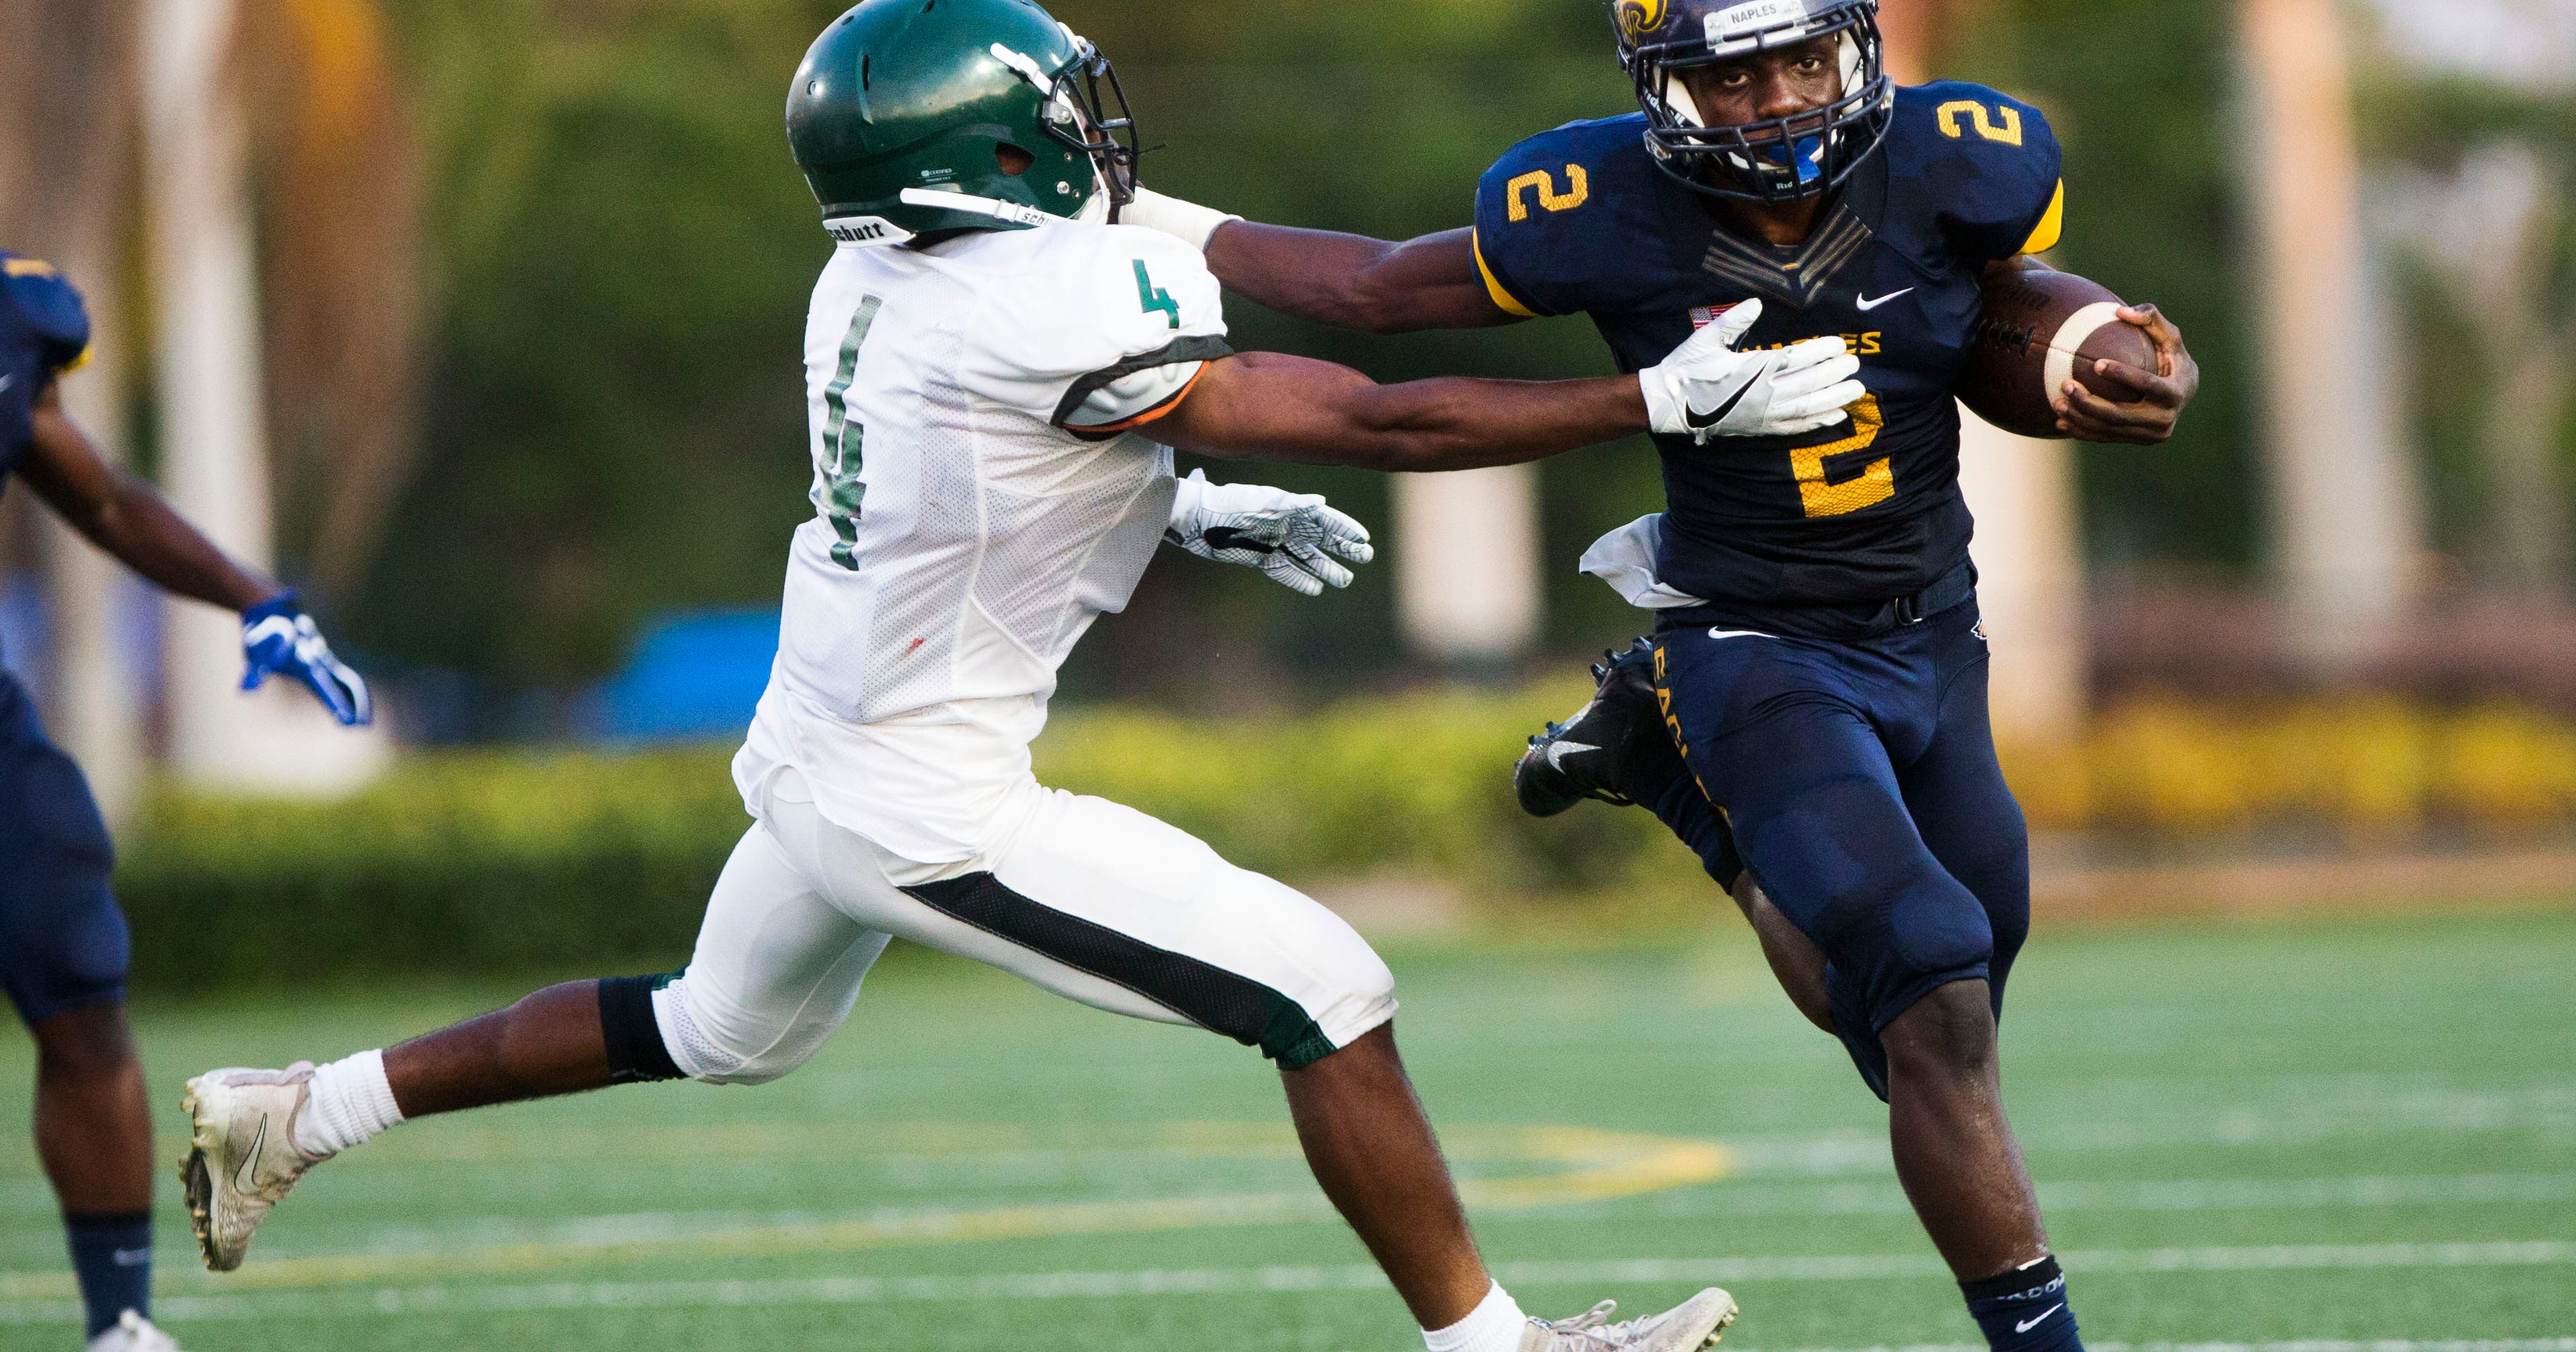 Naples High football team runs over St. Petersburg in ...